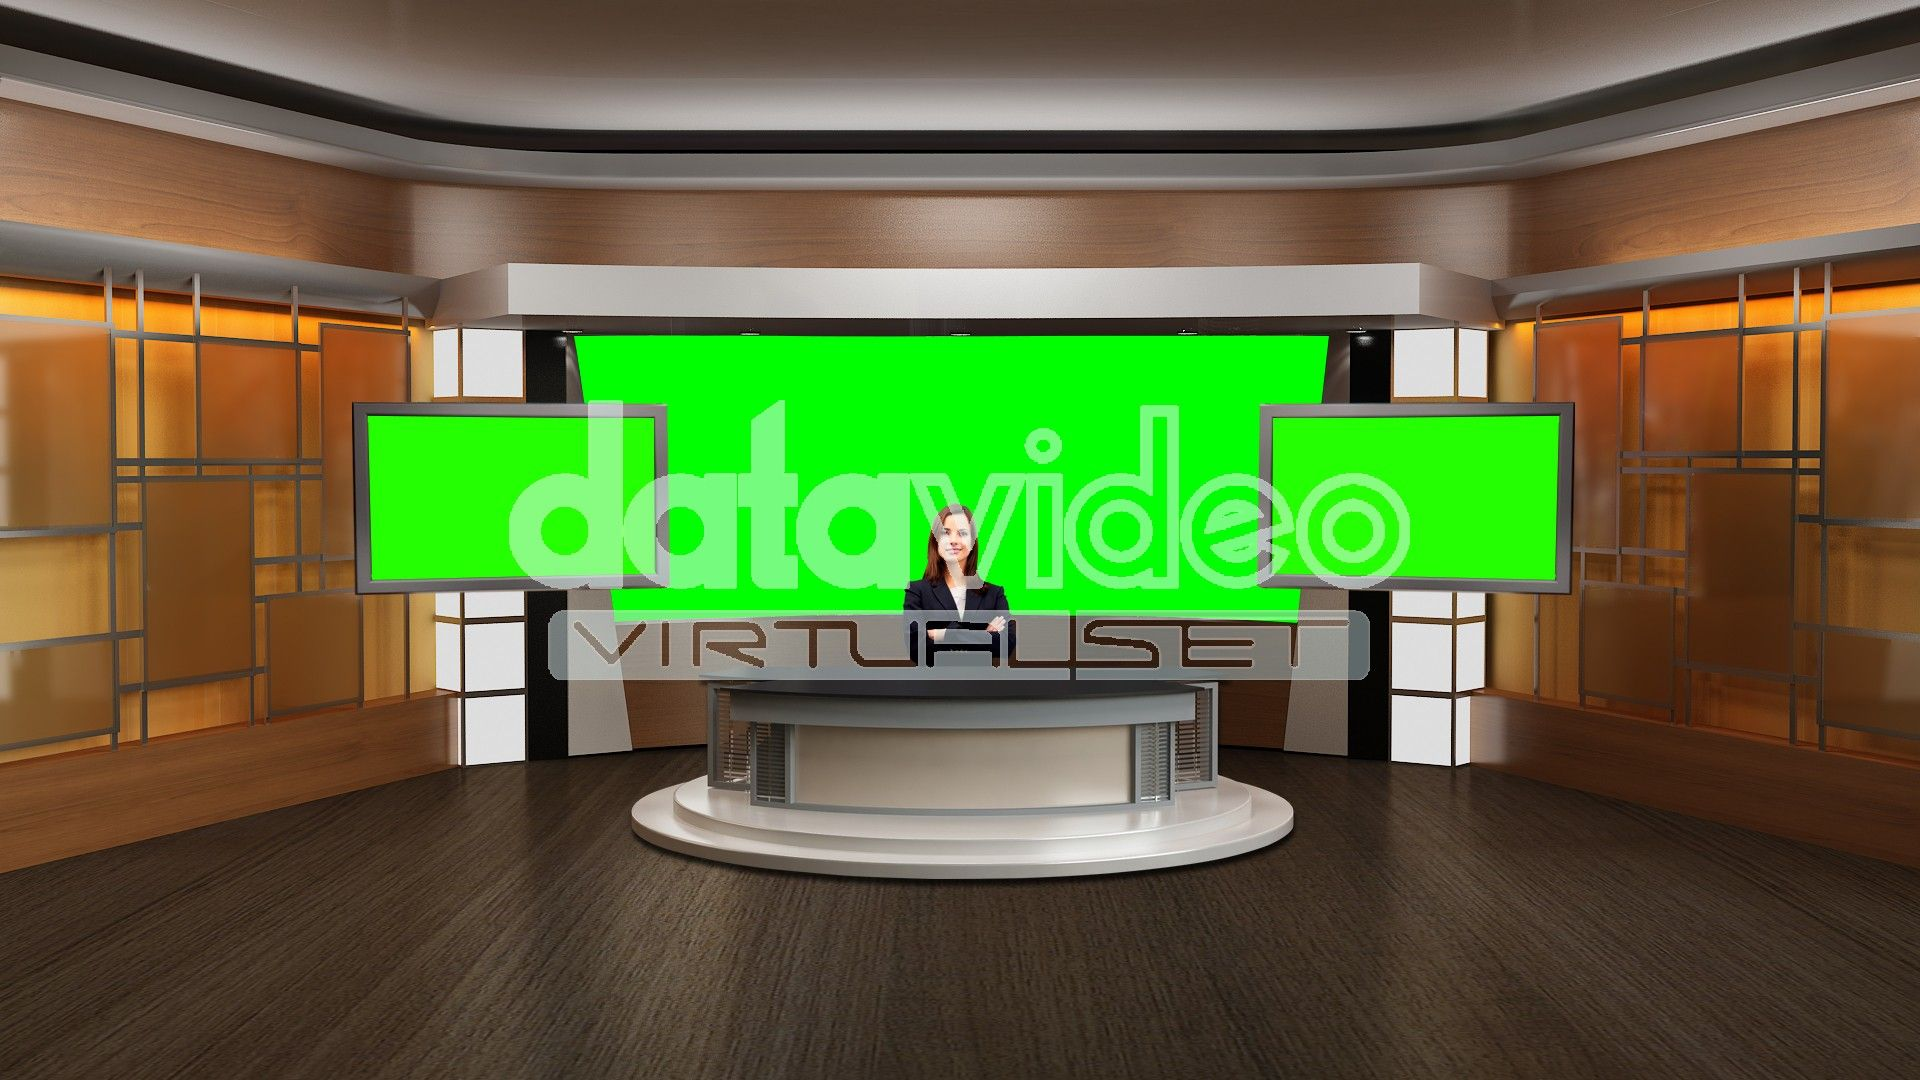 Exhibition Stand Design Psd : News tv studio set virtual green screen background psd